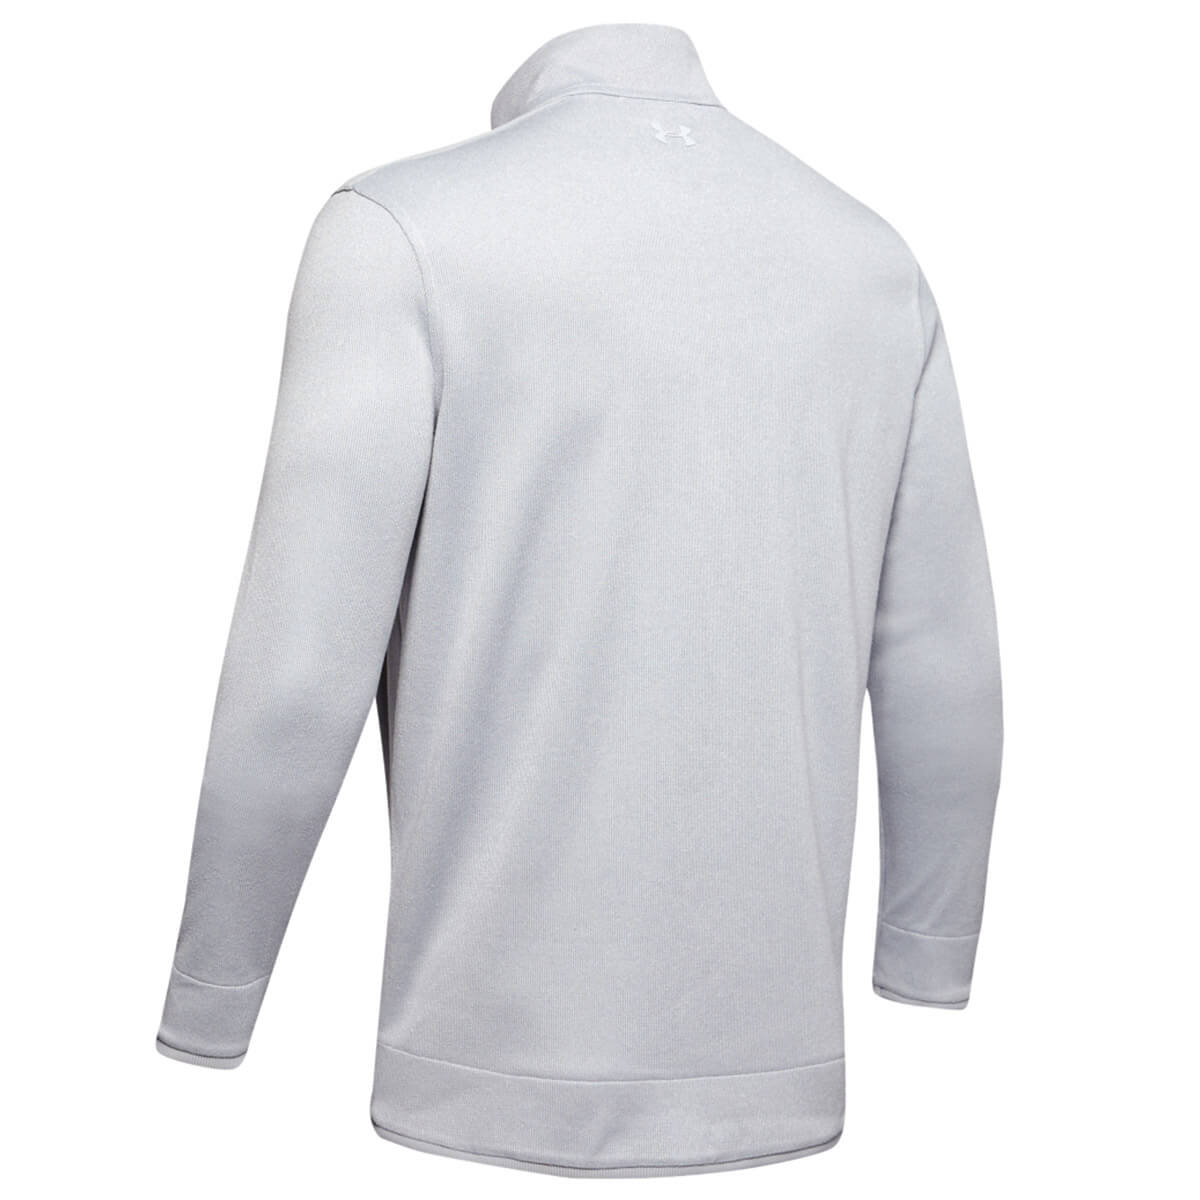 Under-Armour-Homme-UA-sweaterfleece-1-2-zip-resistant-a-l-039-eau-Pullover-40-OFF-RRP miniature 28